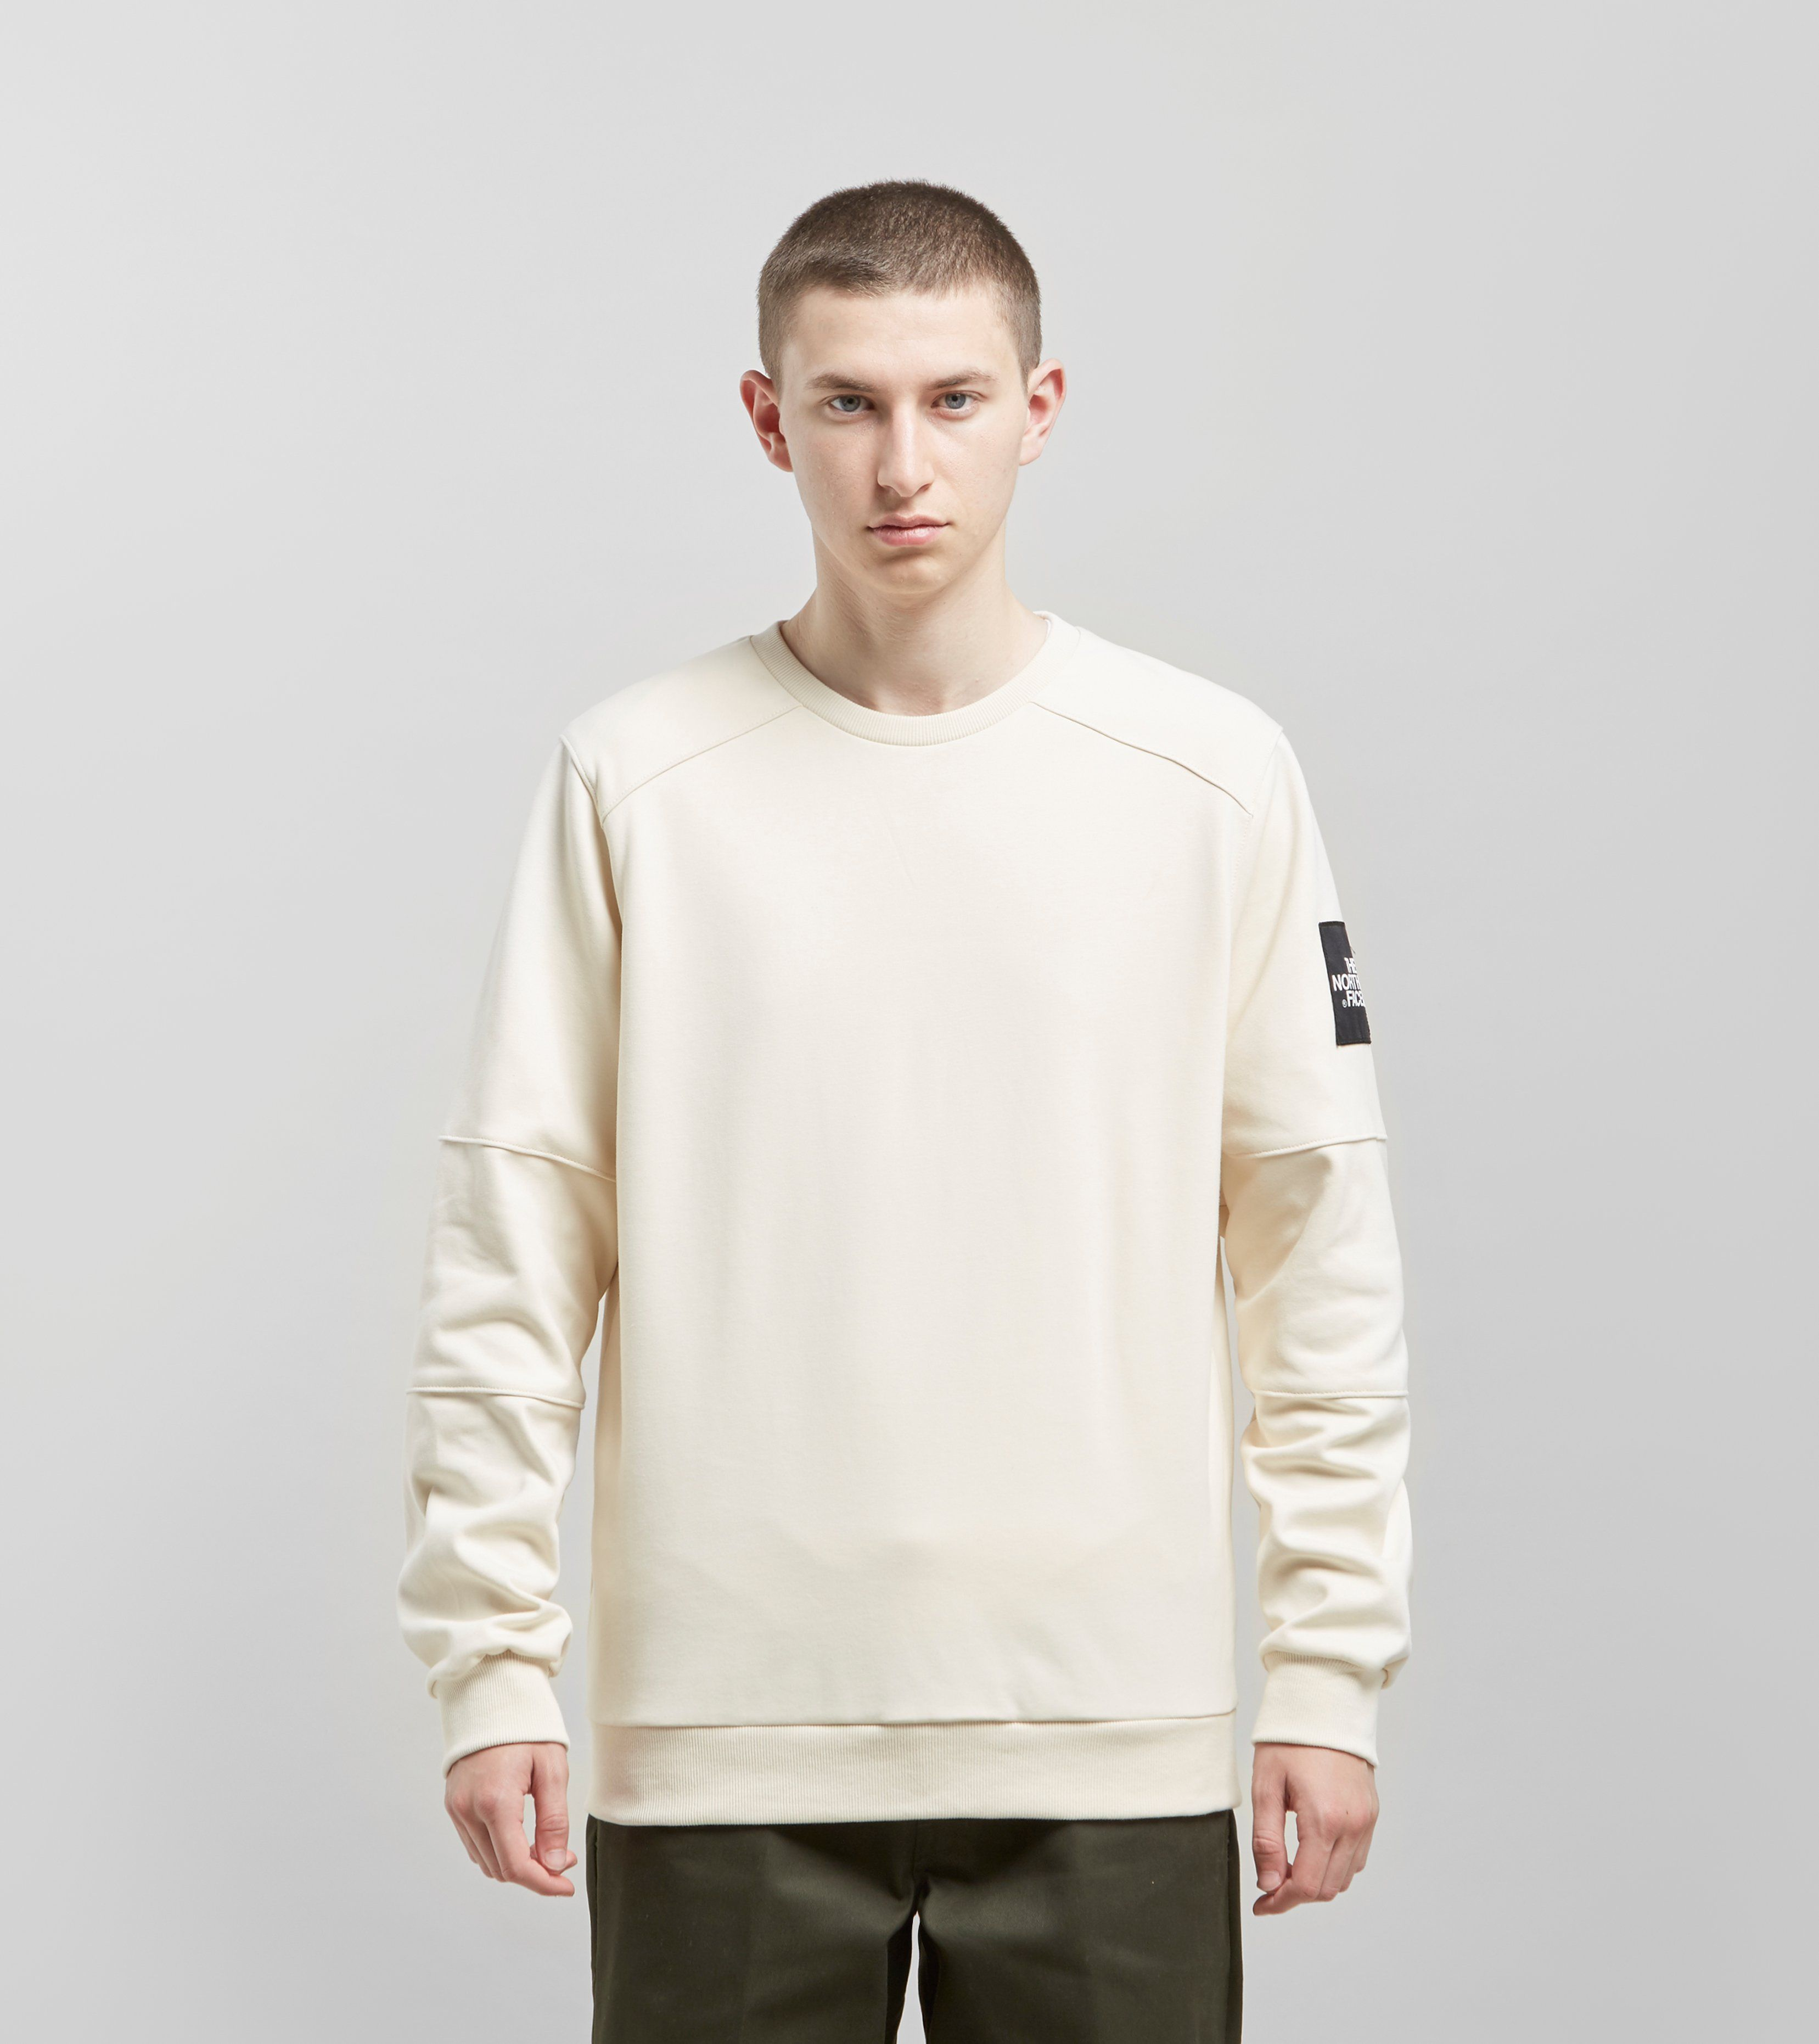 The North Face Fine Light Crewneck Sweatshirt